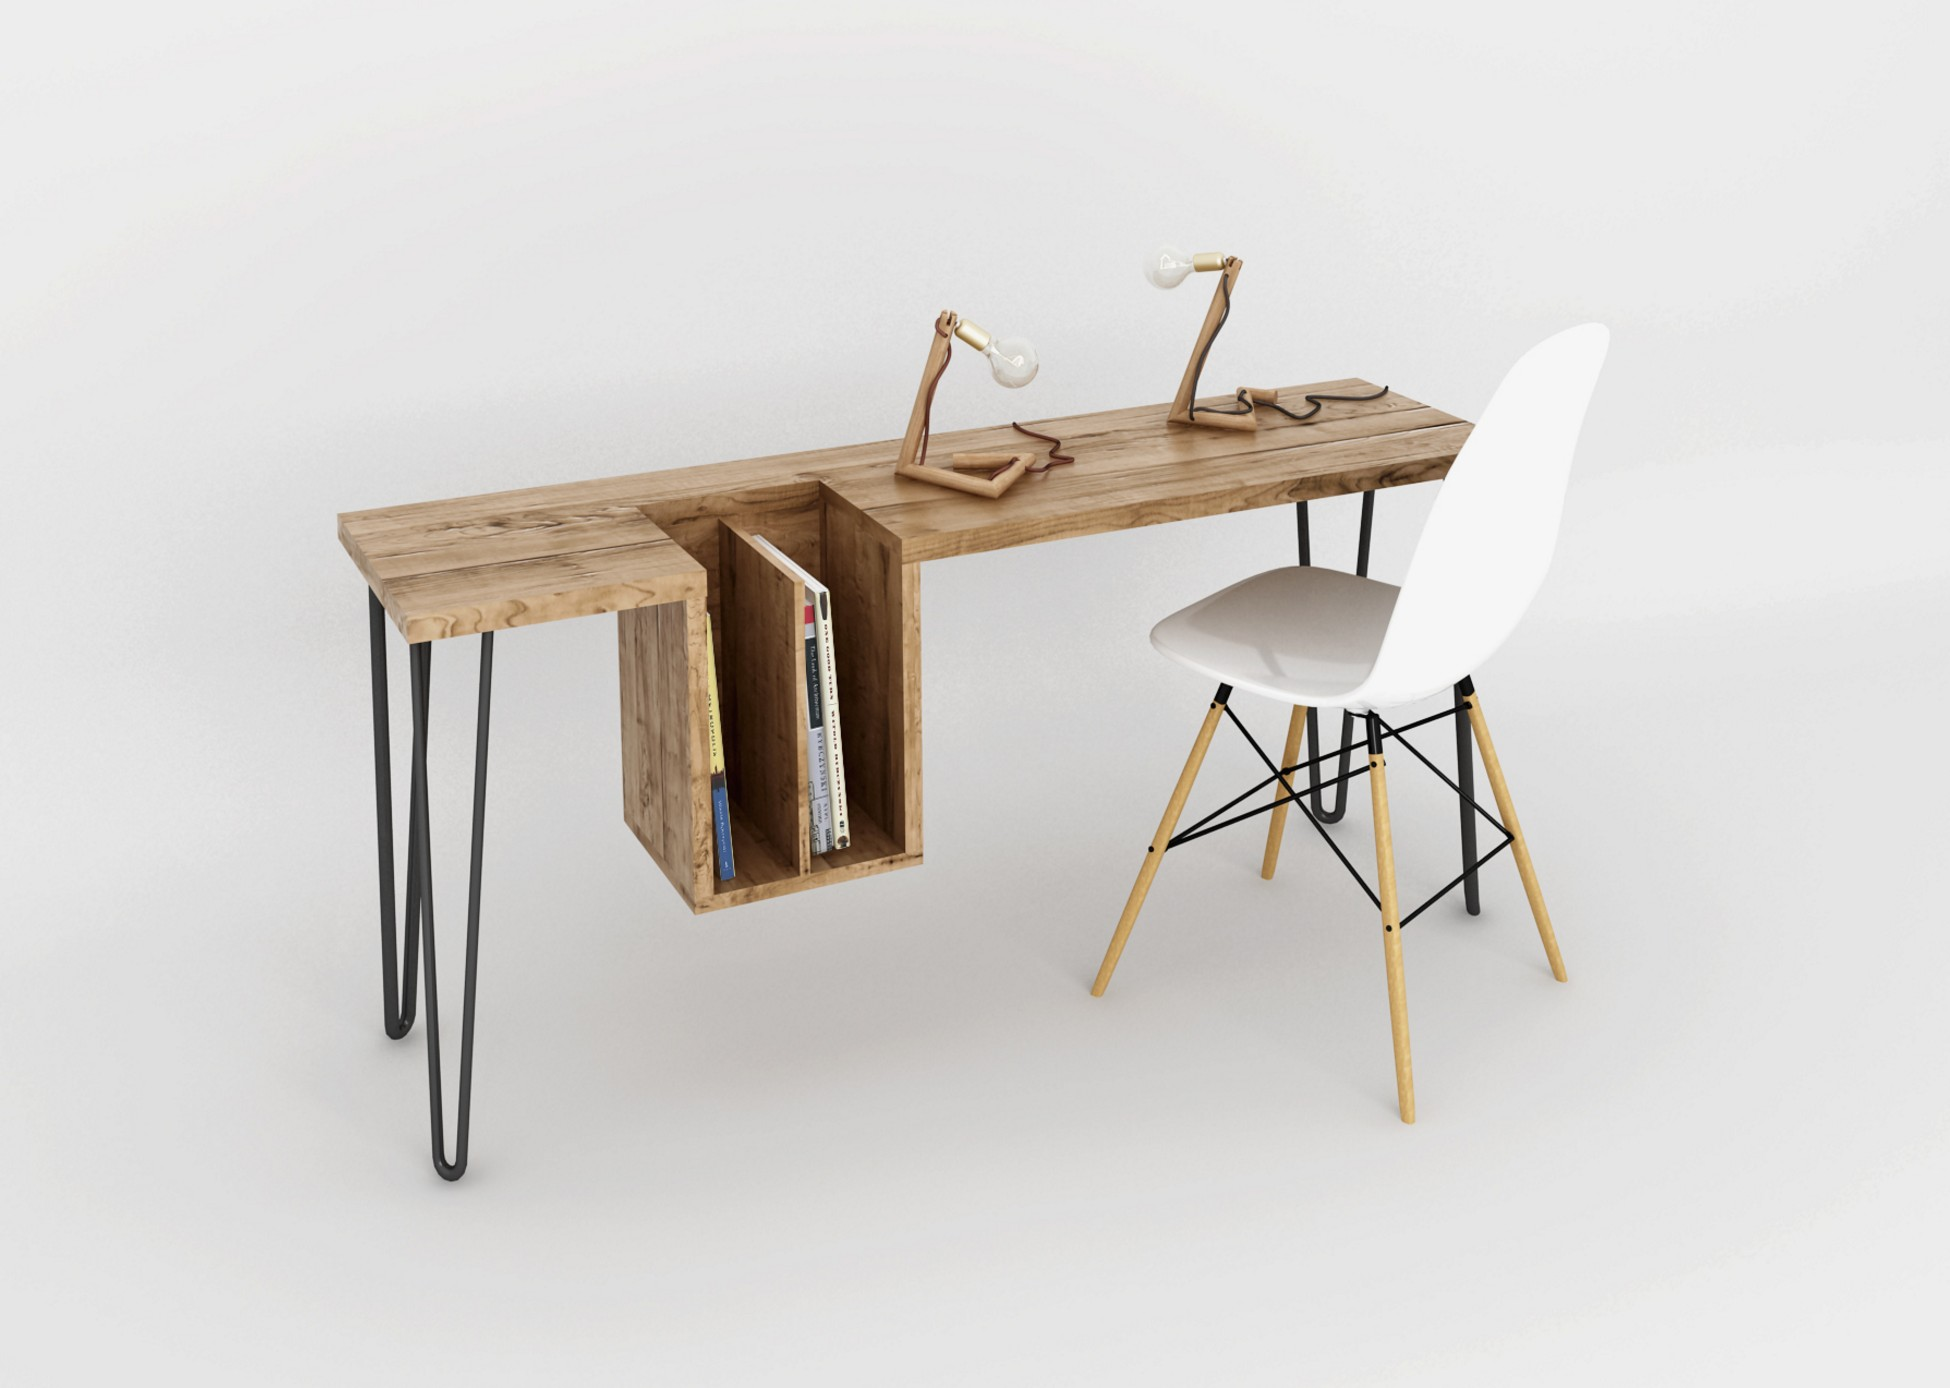 Bureau Bois Design Bureau High Table Par Ehoeho - Blog Déco Design